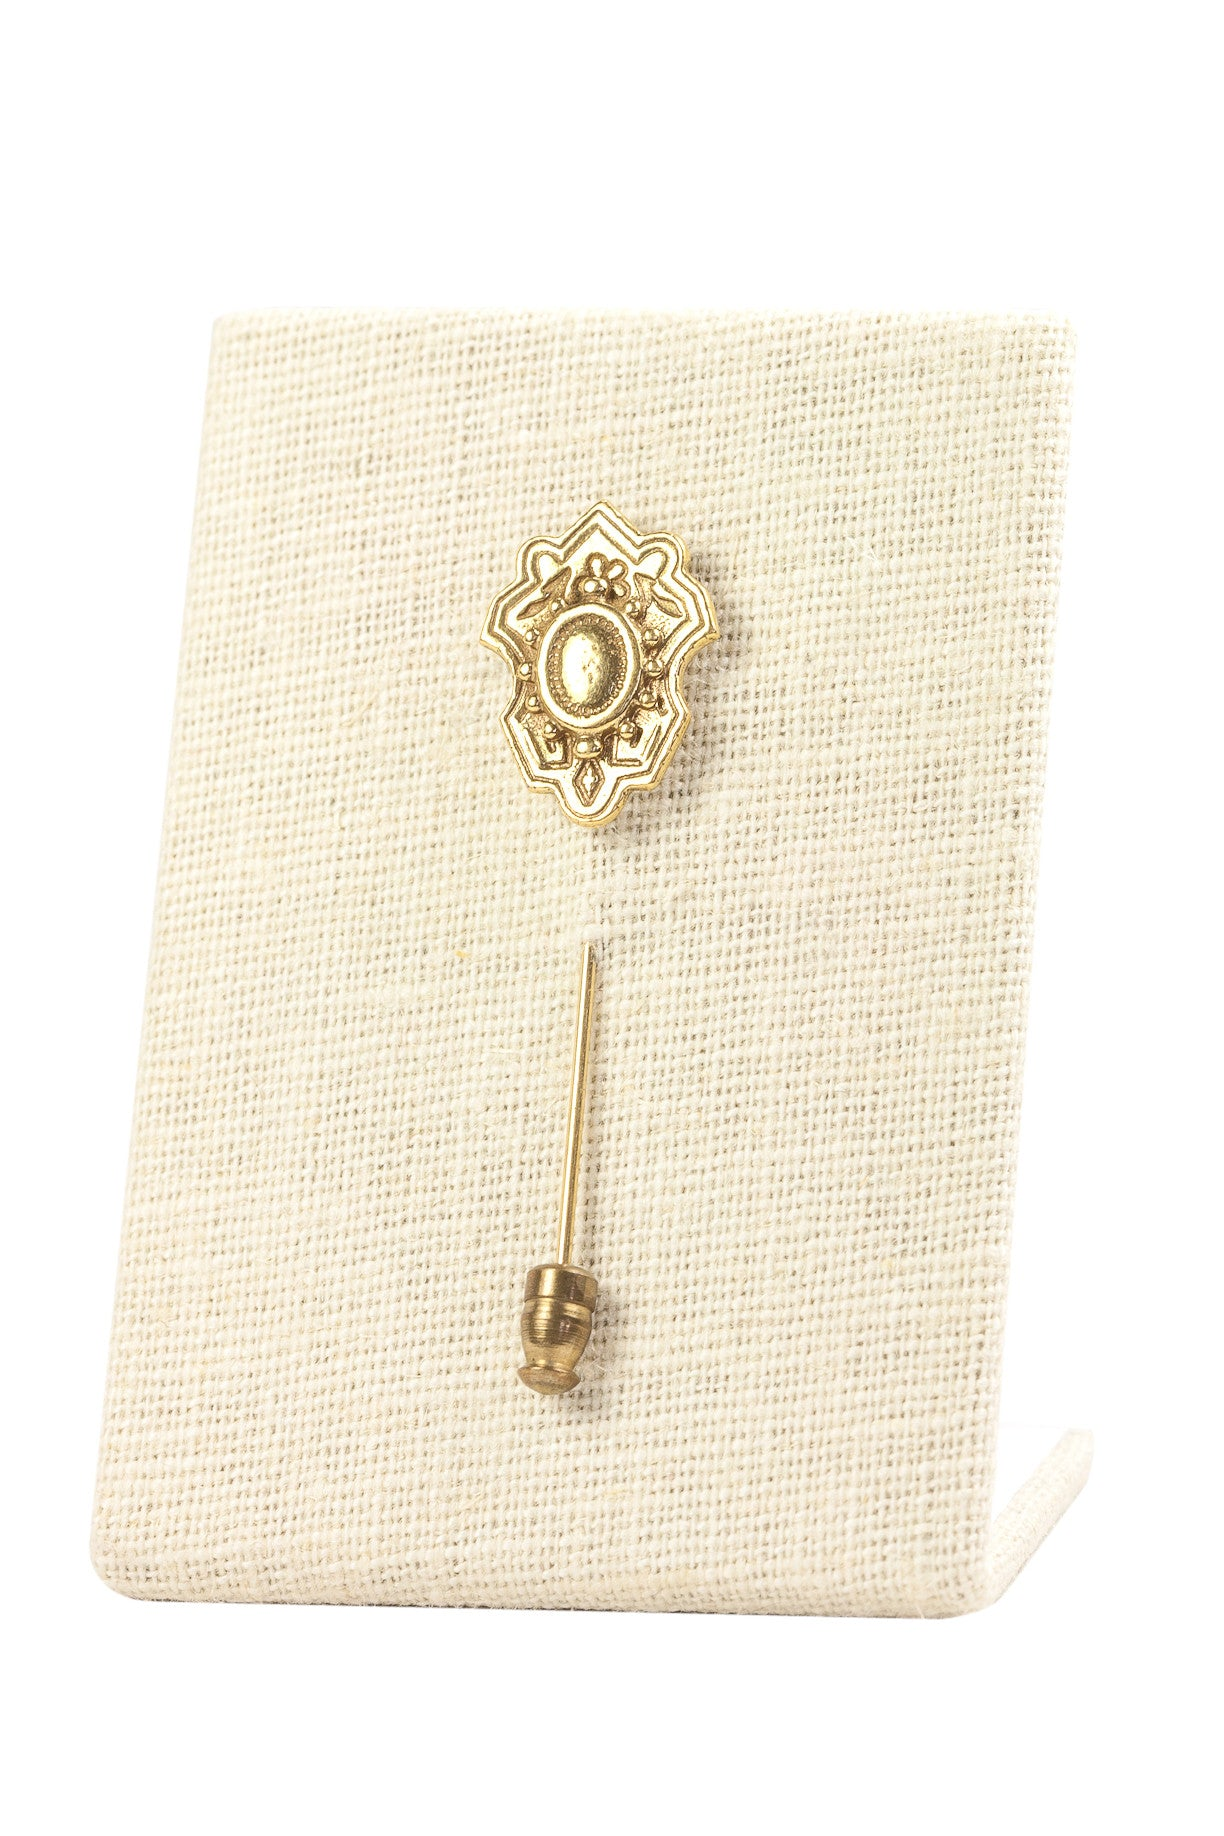 50's__Vintage__Antique Stick Pin